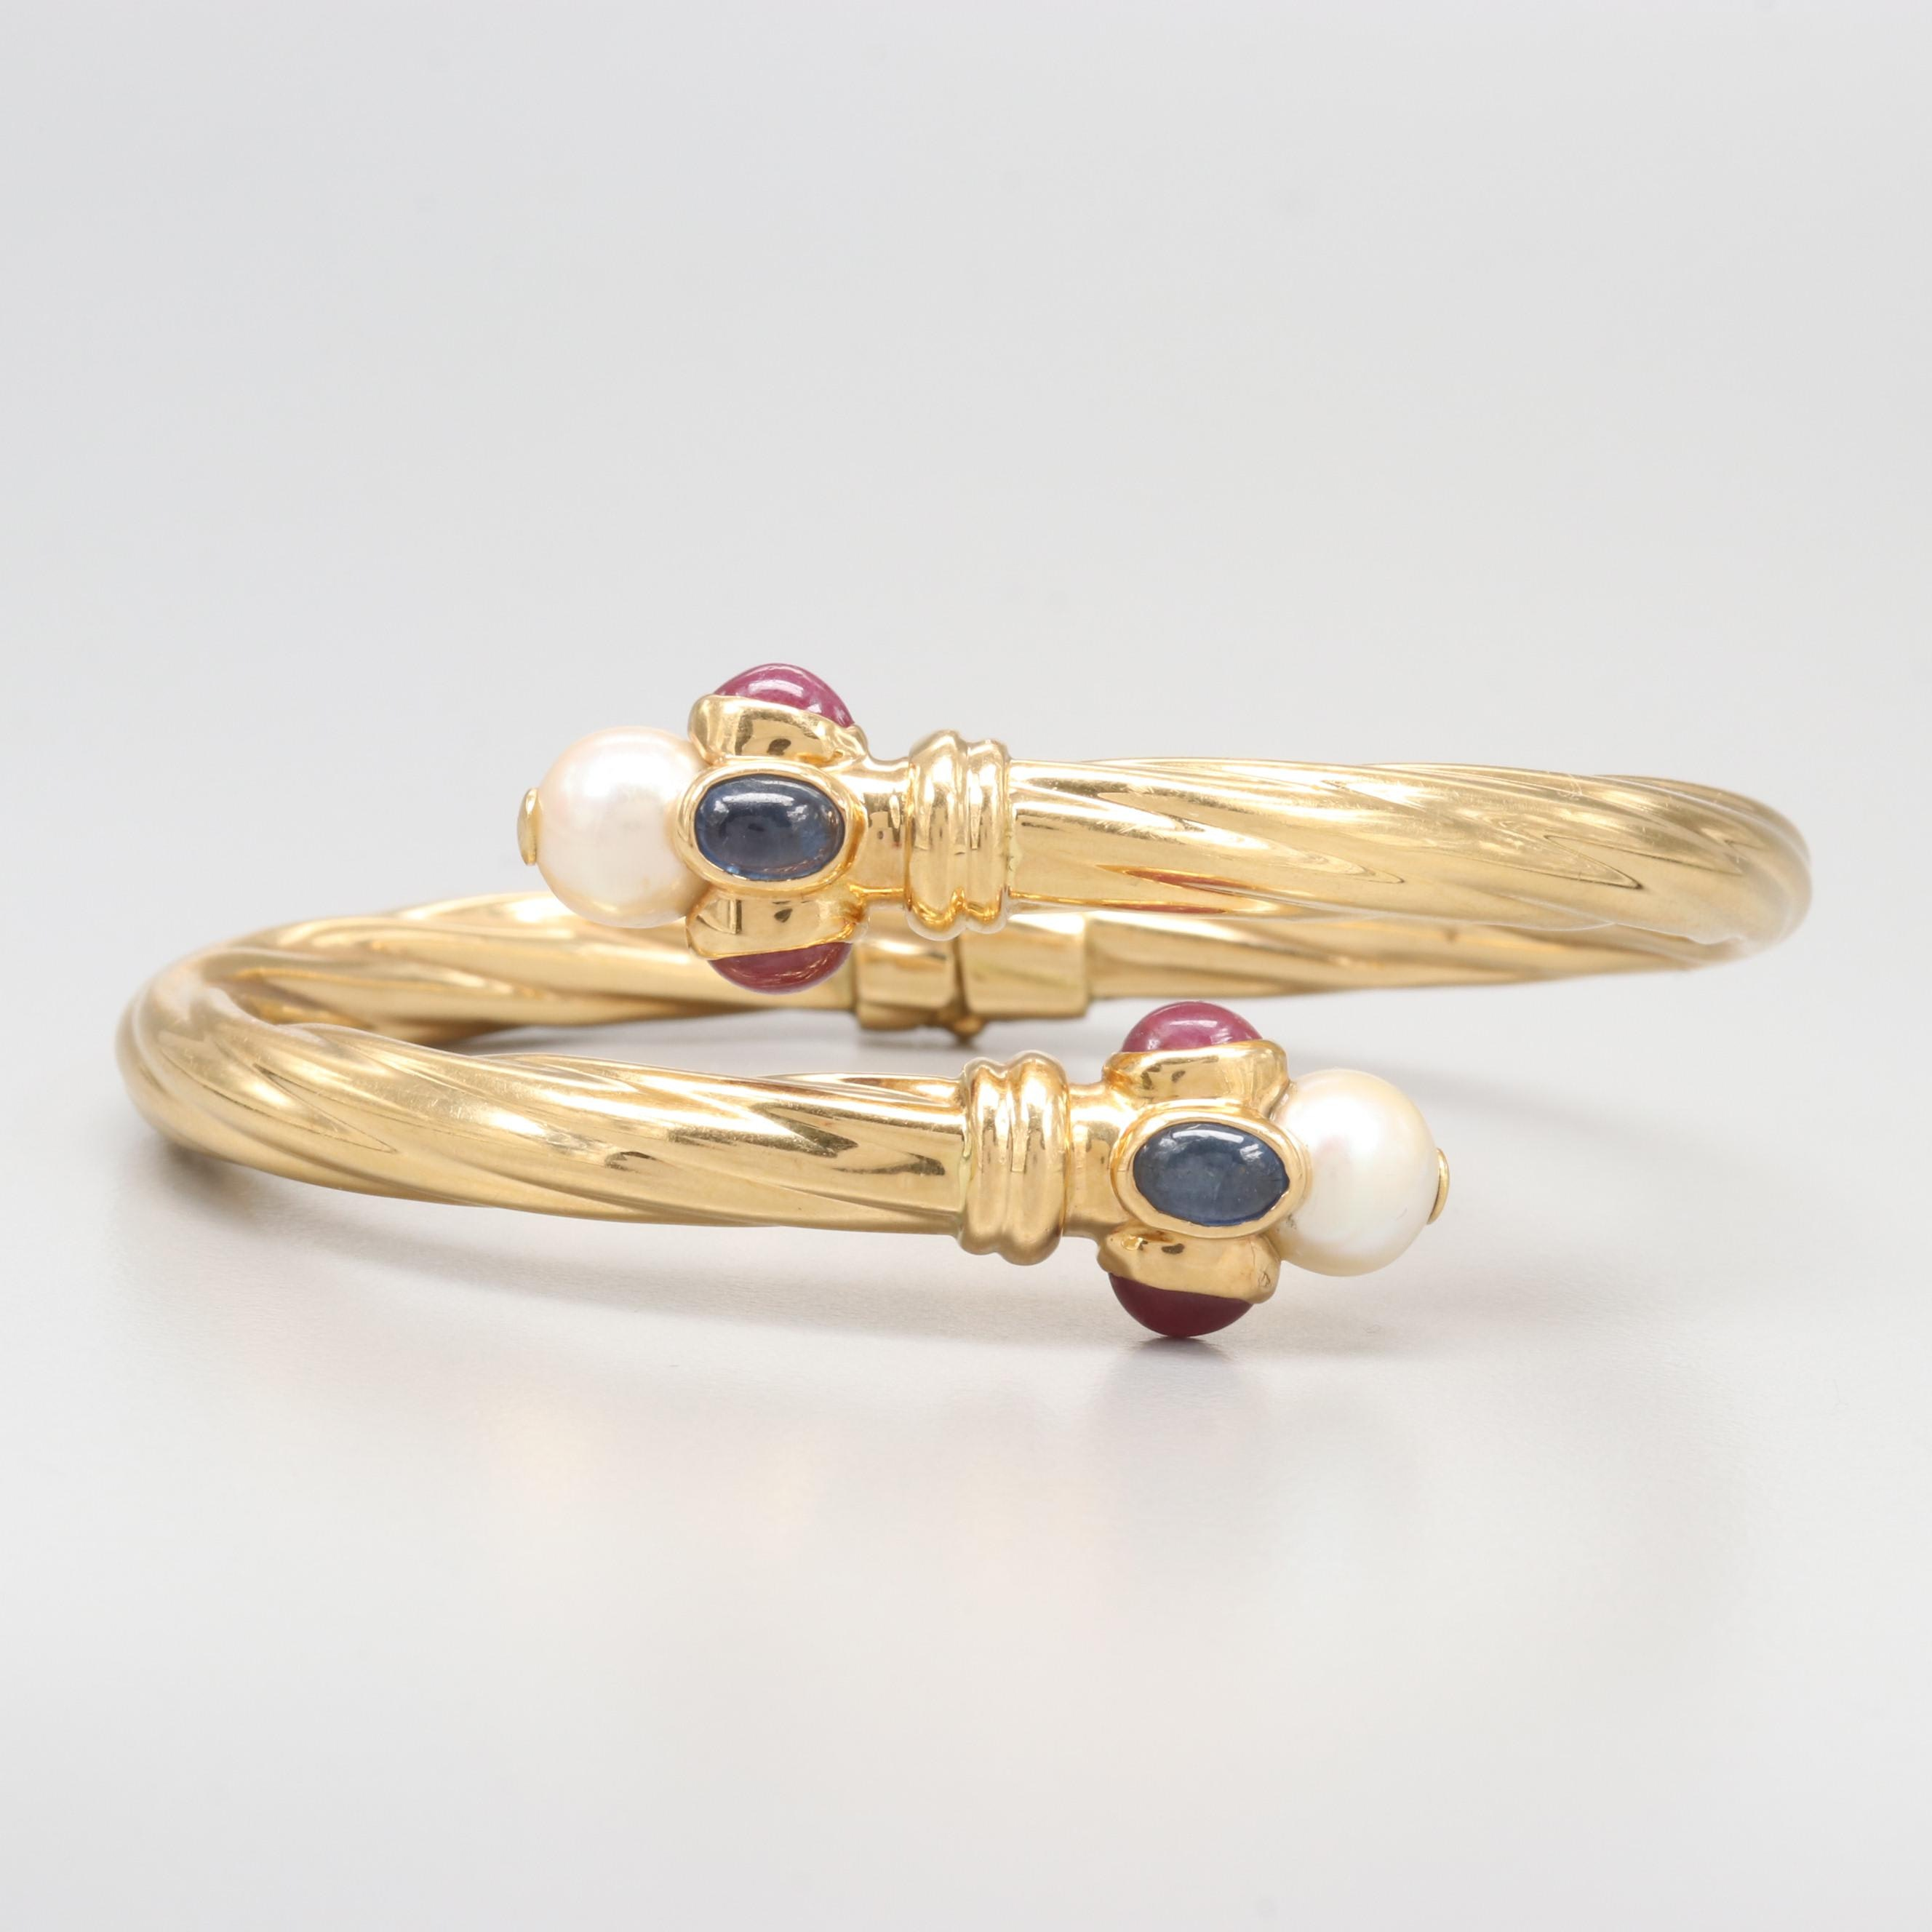 Italian 18K Yellow Gold Cultured Pearl, Ruby and Blue Sapphire Bypass Bracelet